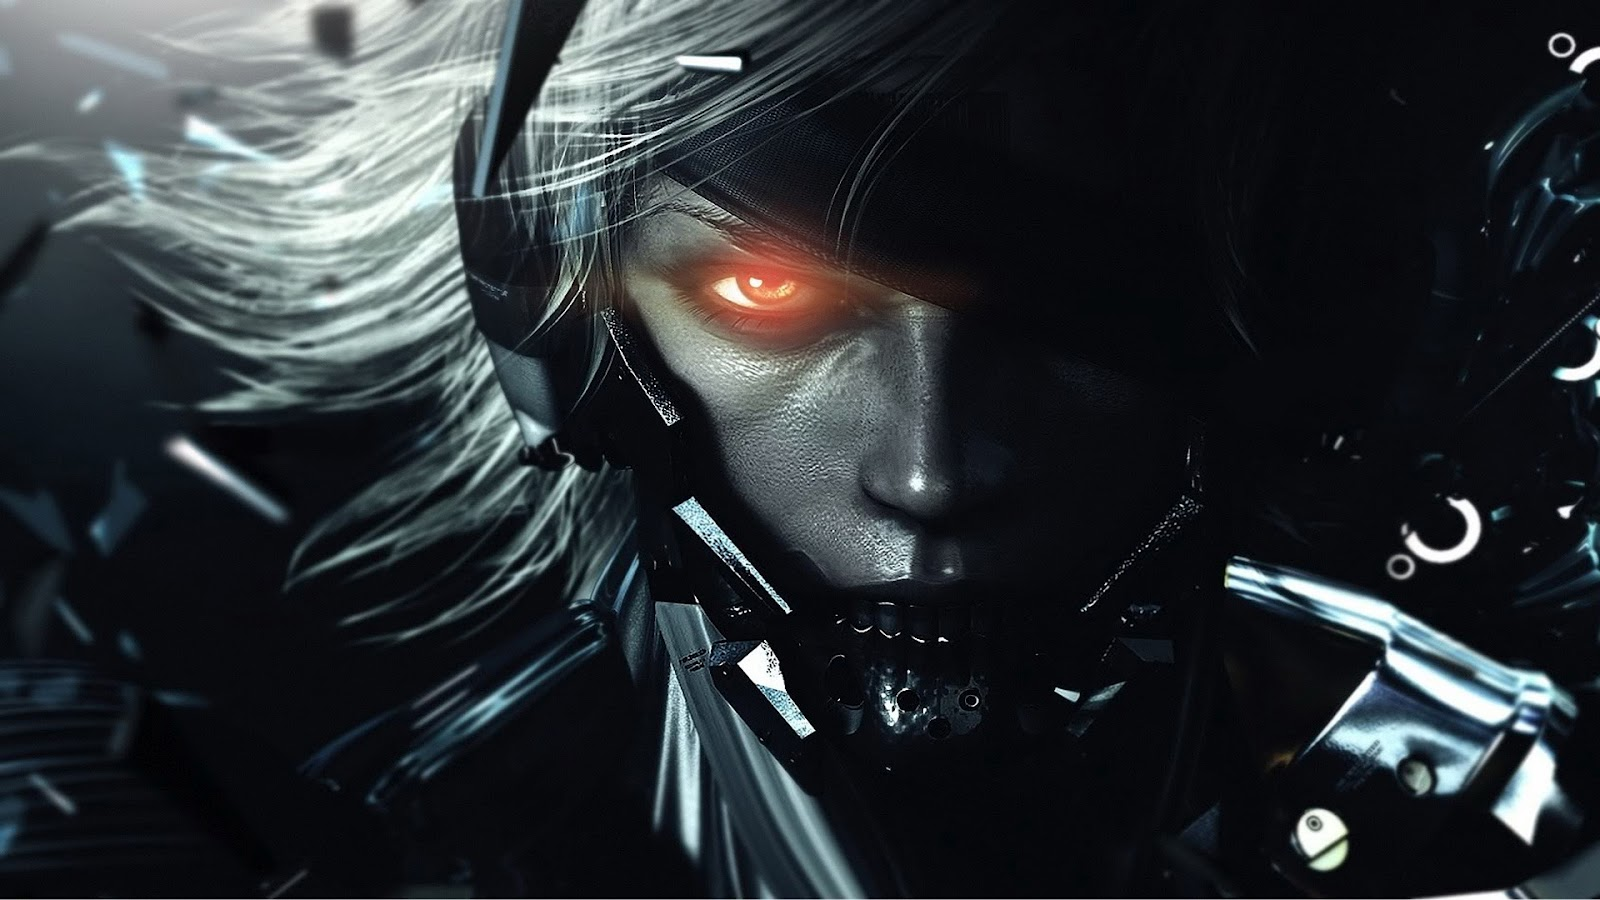 'Metal Gear Rising: Revengeance' takes top spot in Japan